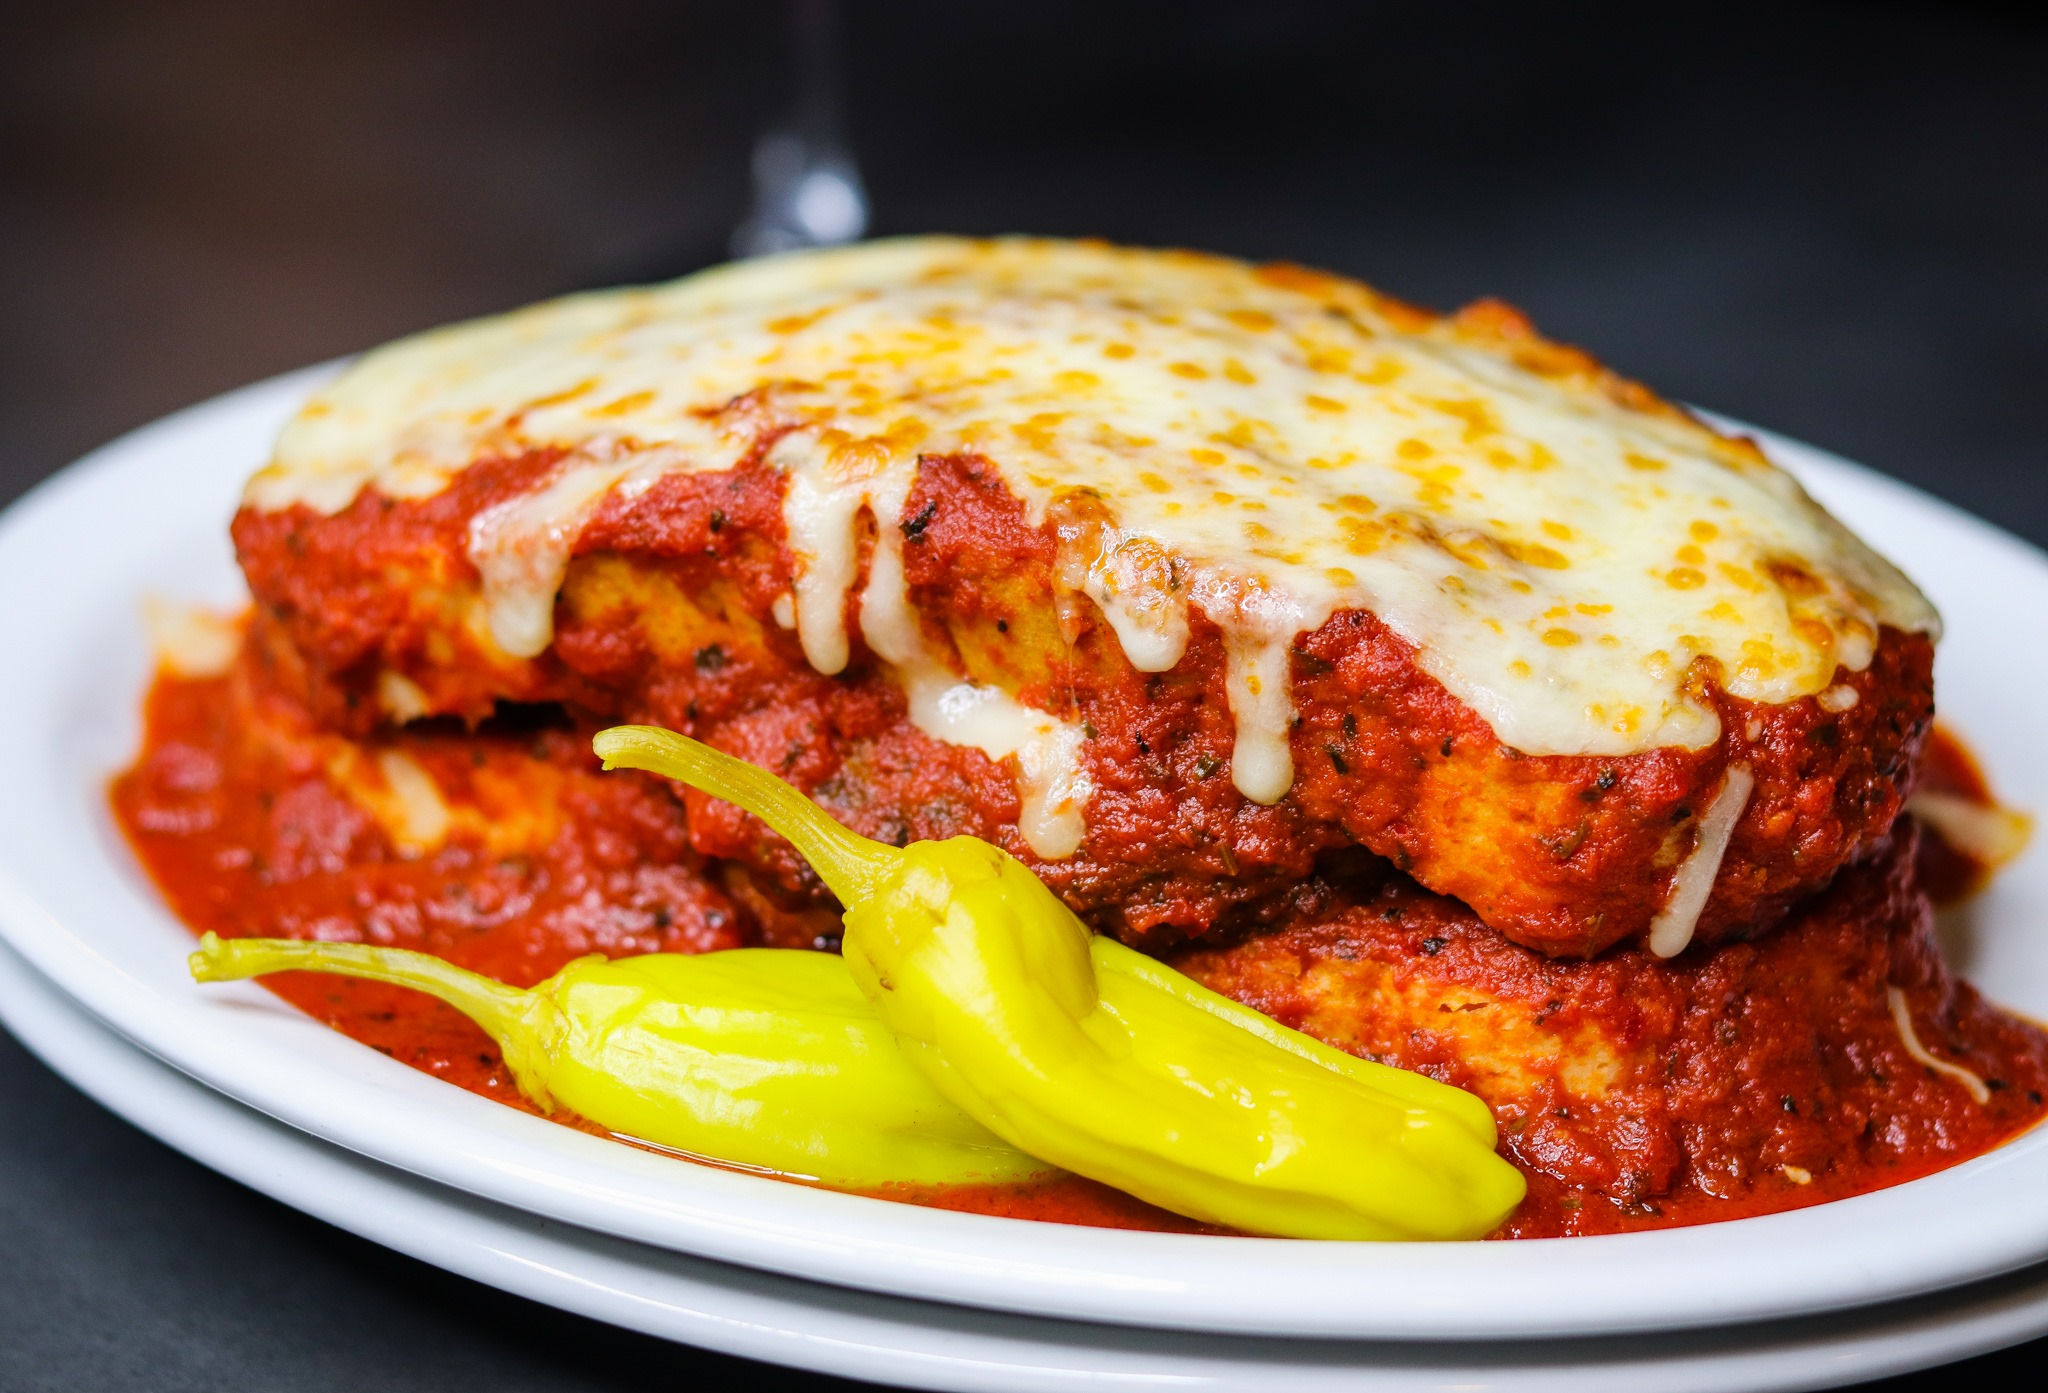 A sliced open Italian sausage is buried under red sauce and covered with a layer of toasted, melty white cheese in a plate filled with sauce and two pepperoncinis.